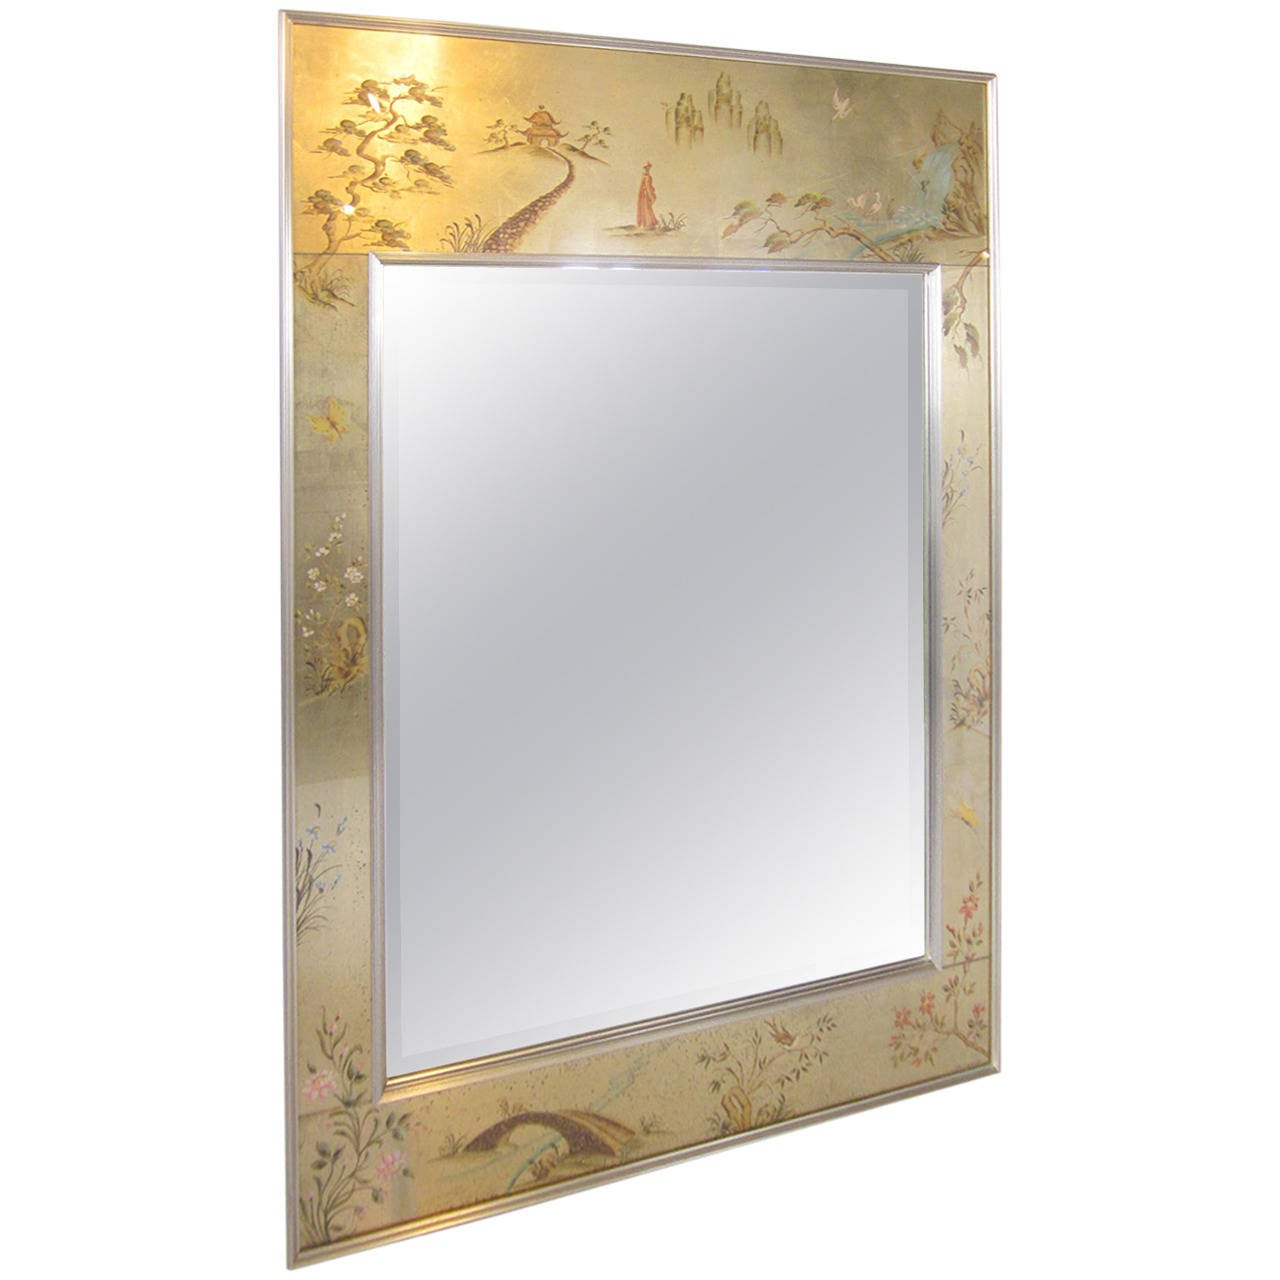 La barge chinoiserie mirror for sale at 1stdibs for Mirrors for sale